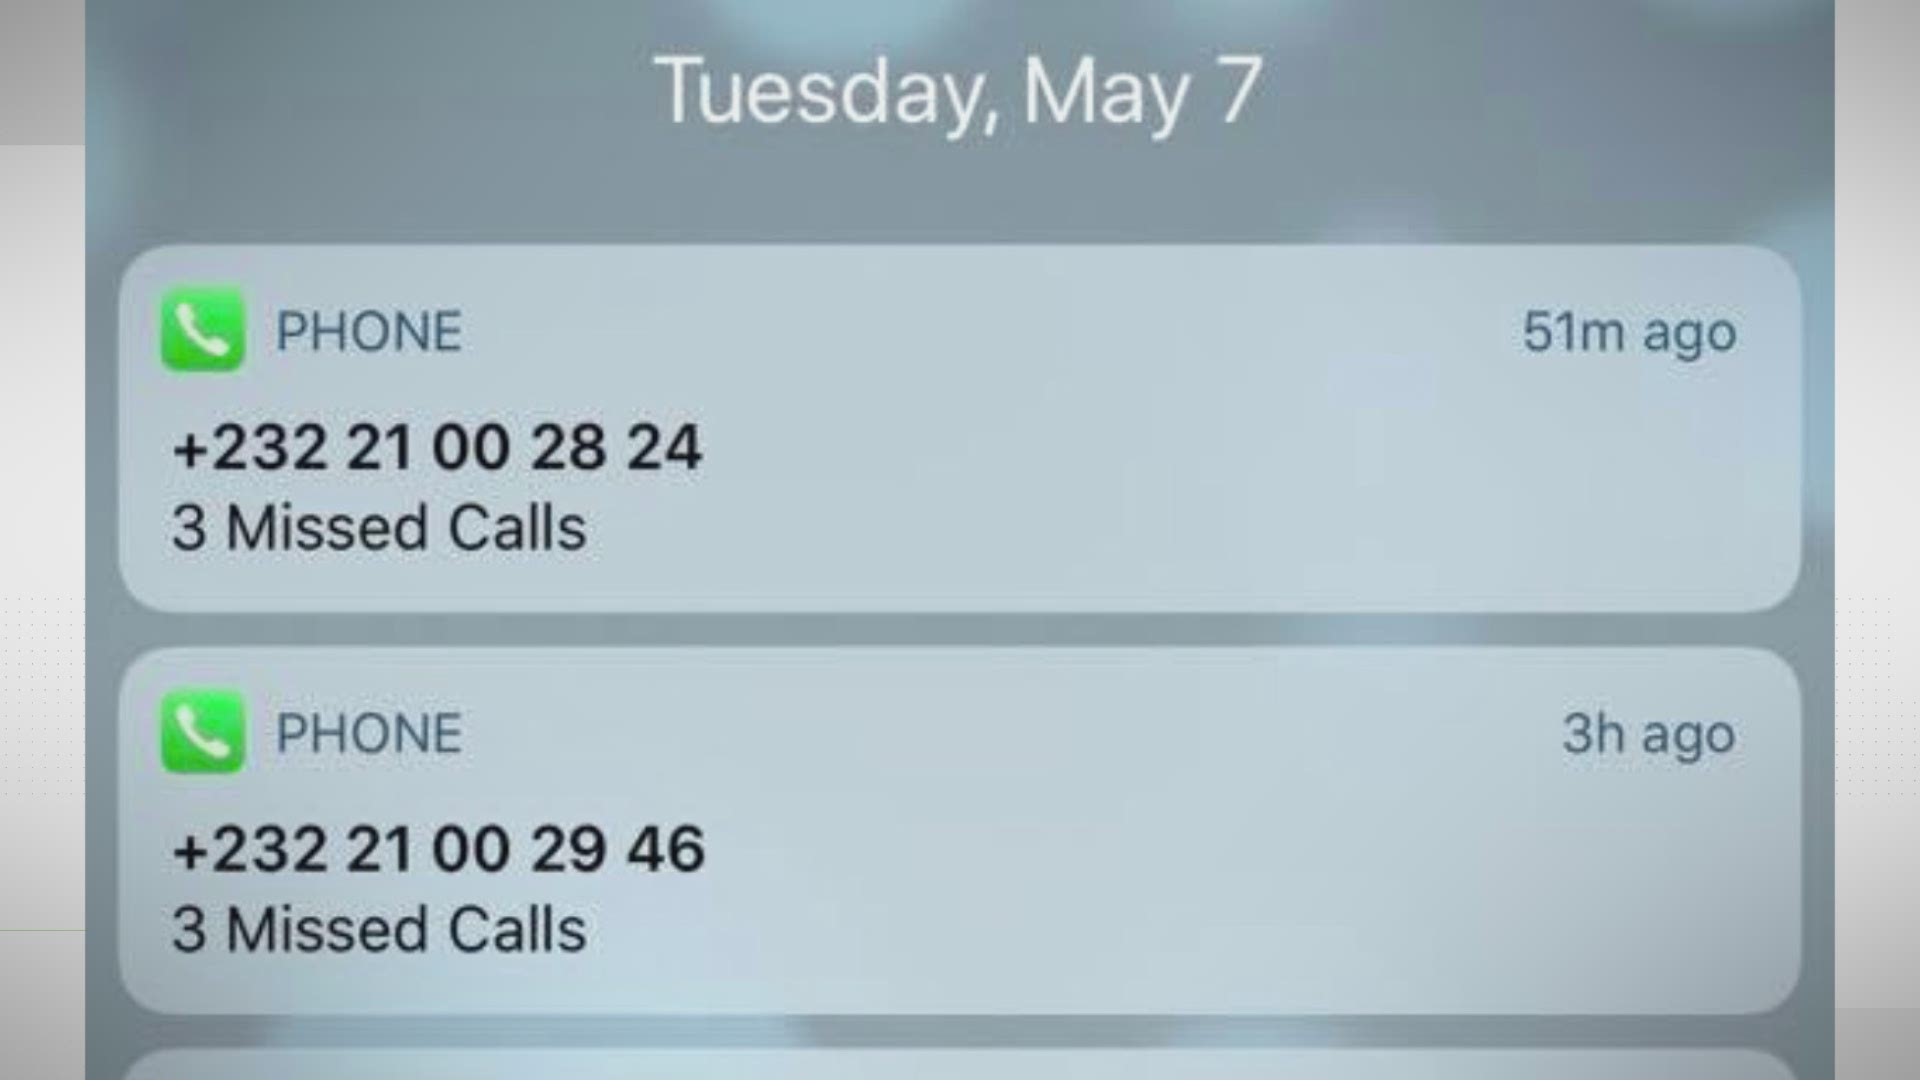 What You Need To Know About The One Ring Or Wangiri Robocall Scams Wkyc Com